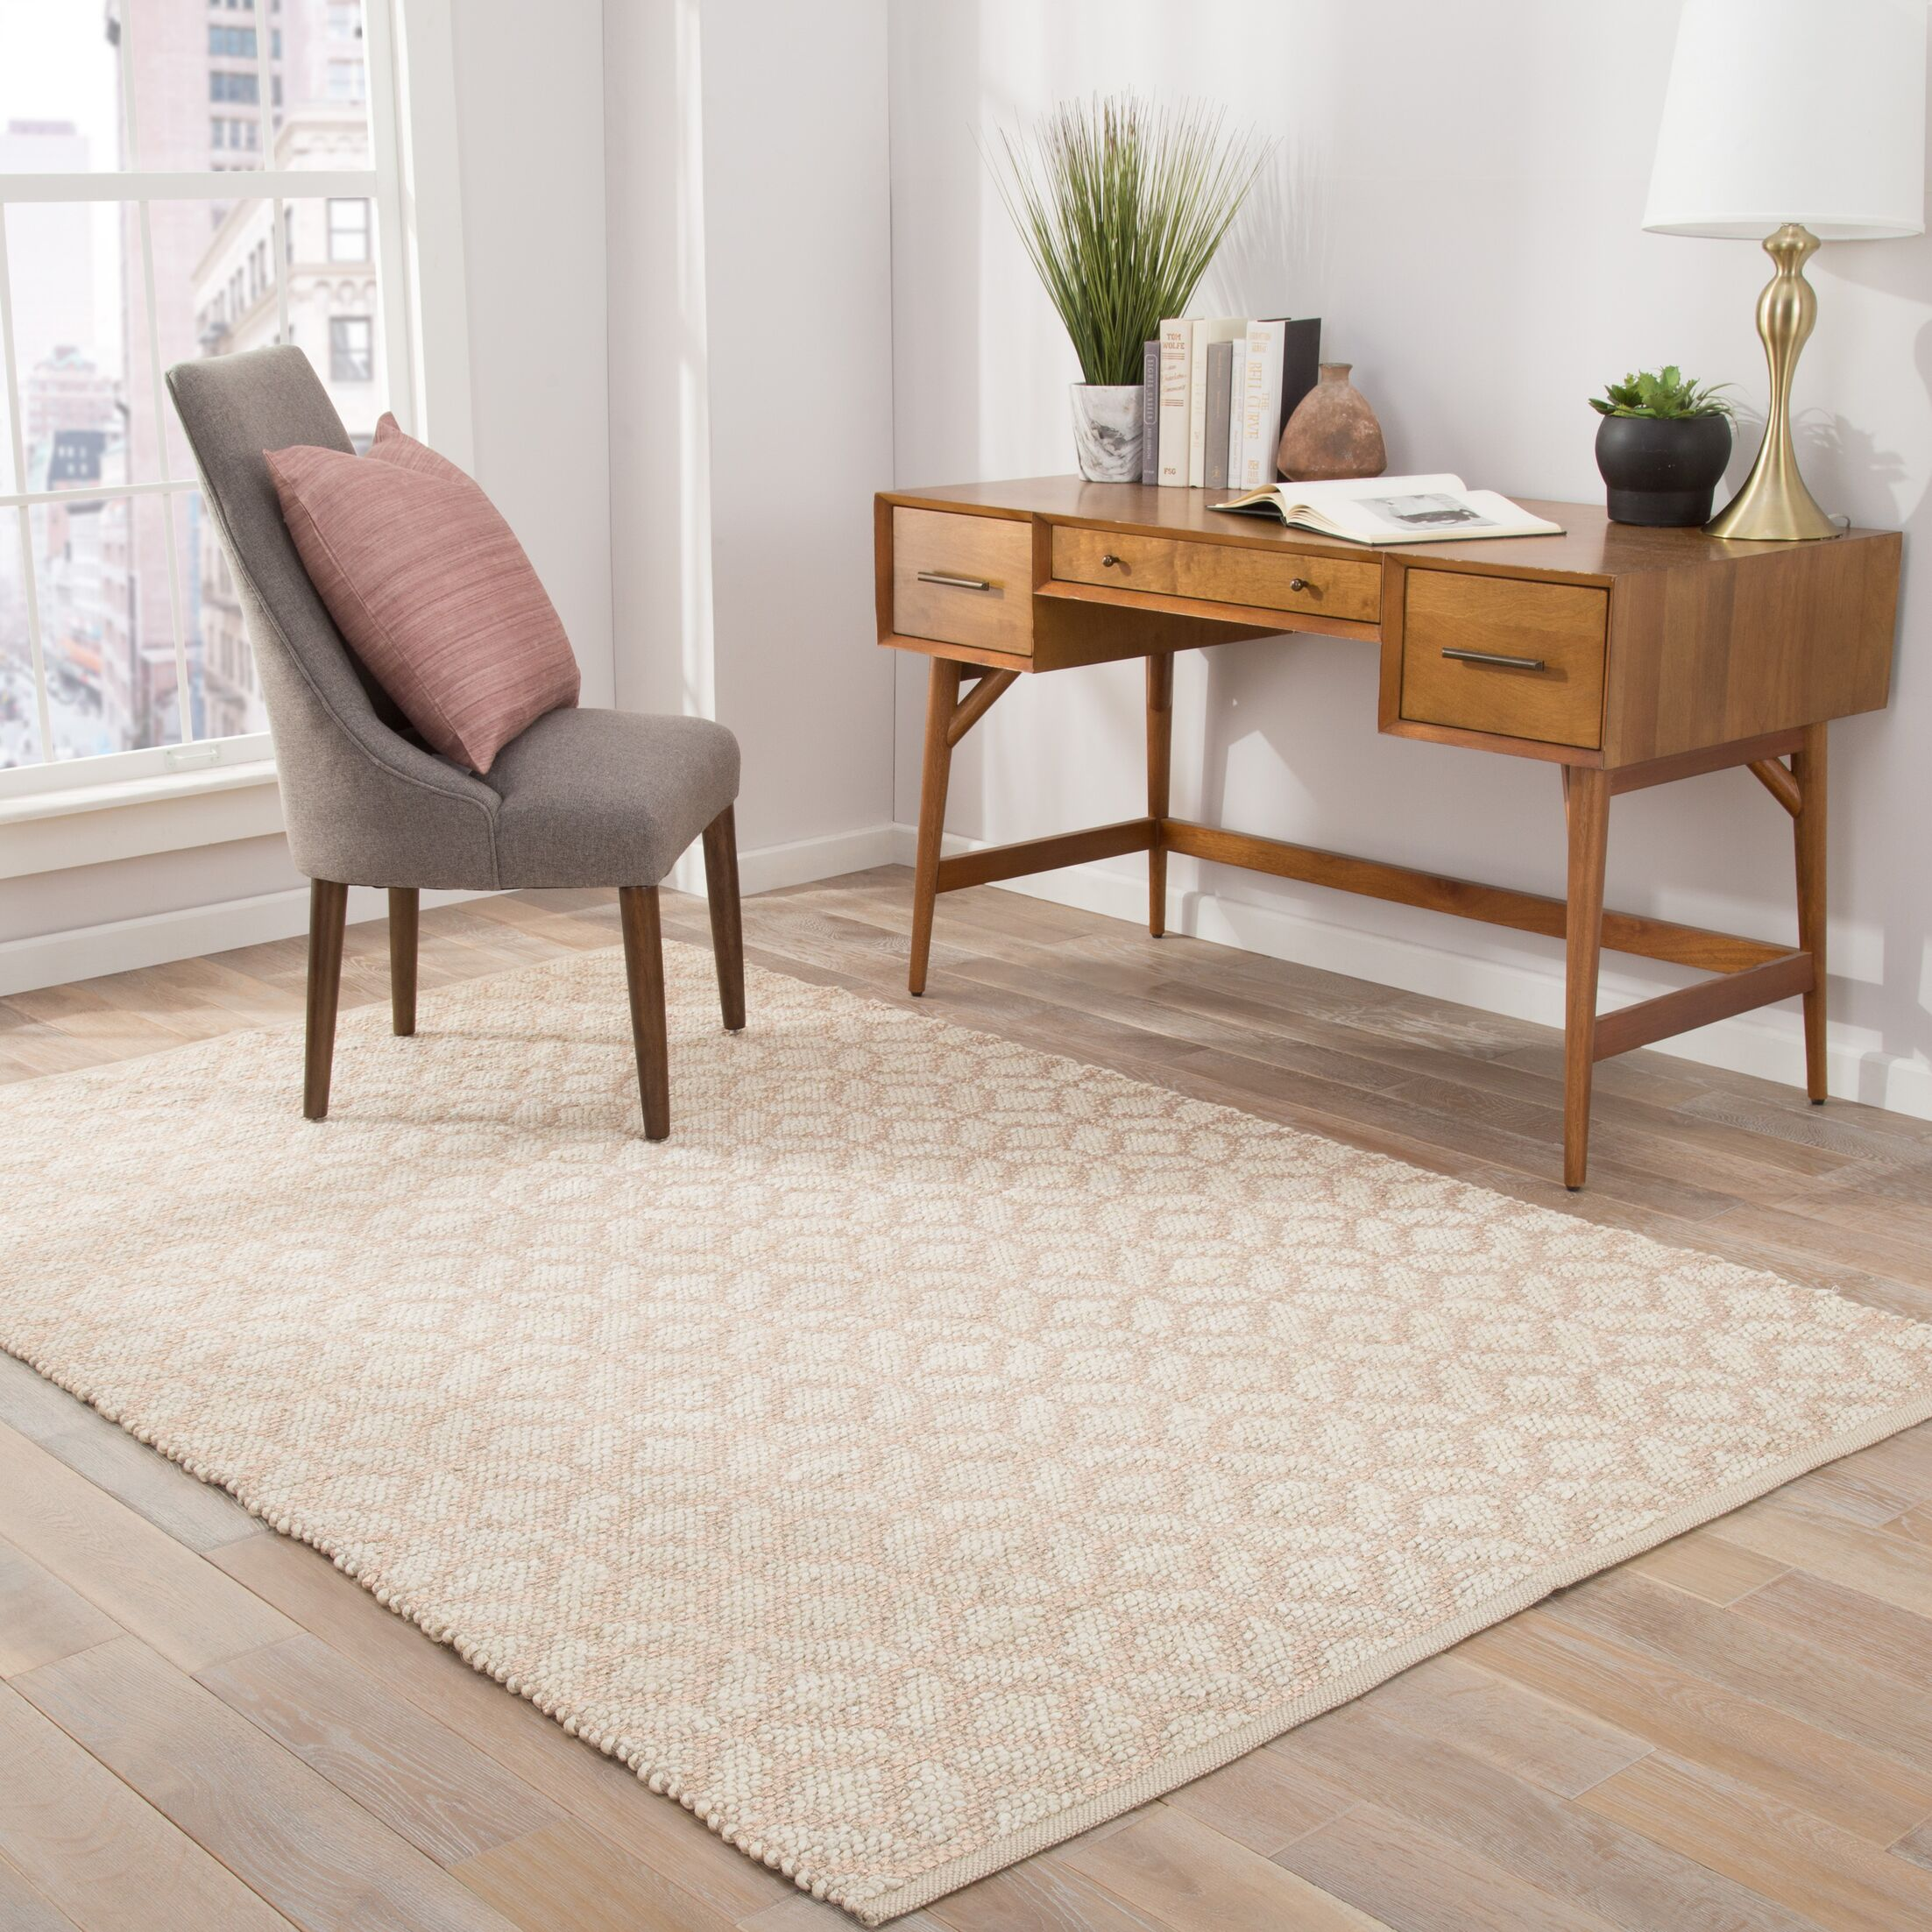 Tadashi Geometric Handmade Ivory Area Rug Rug Size: Rectangle 9' x 12'